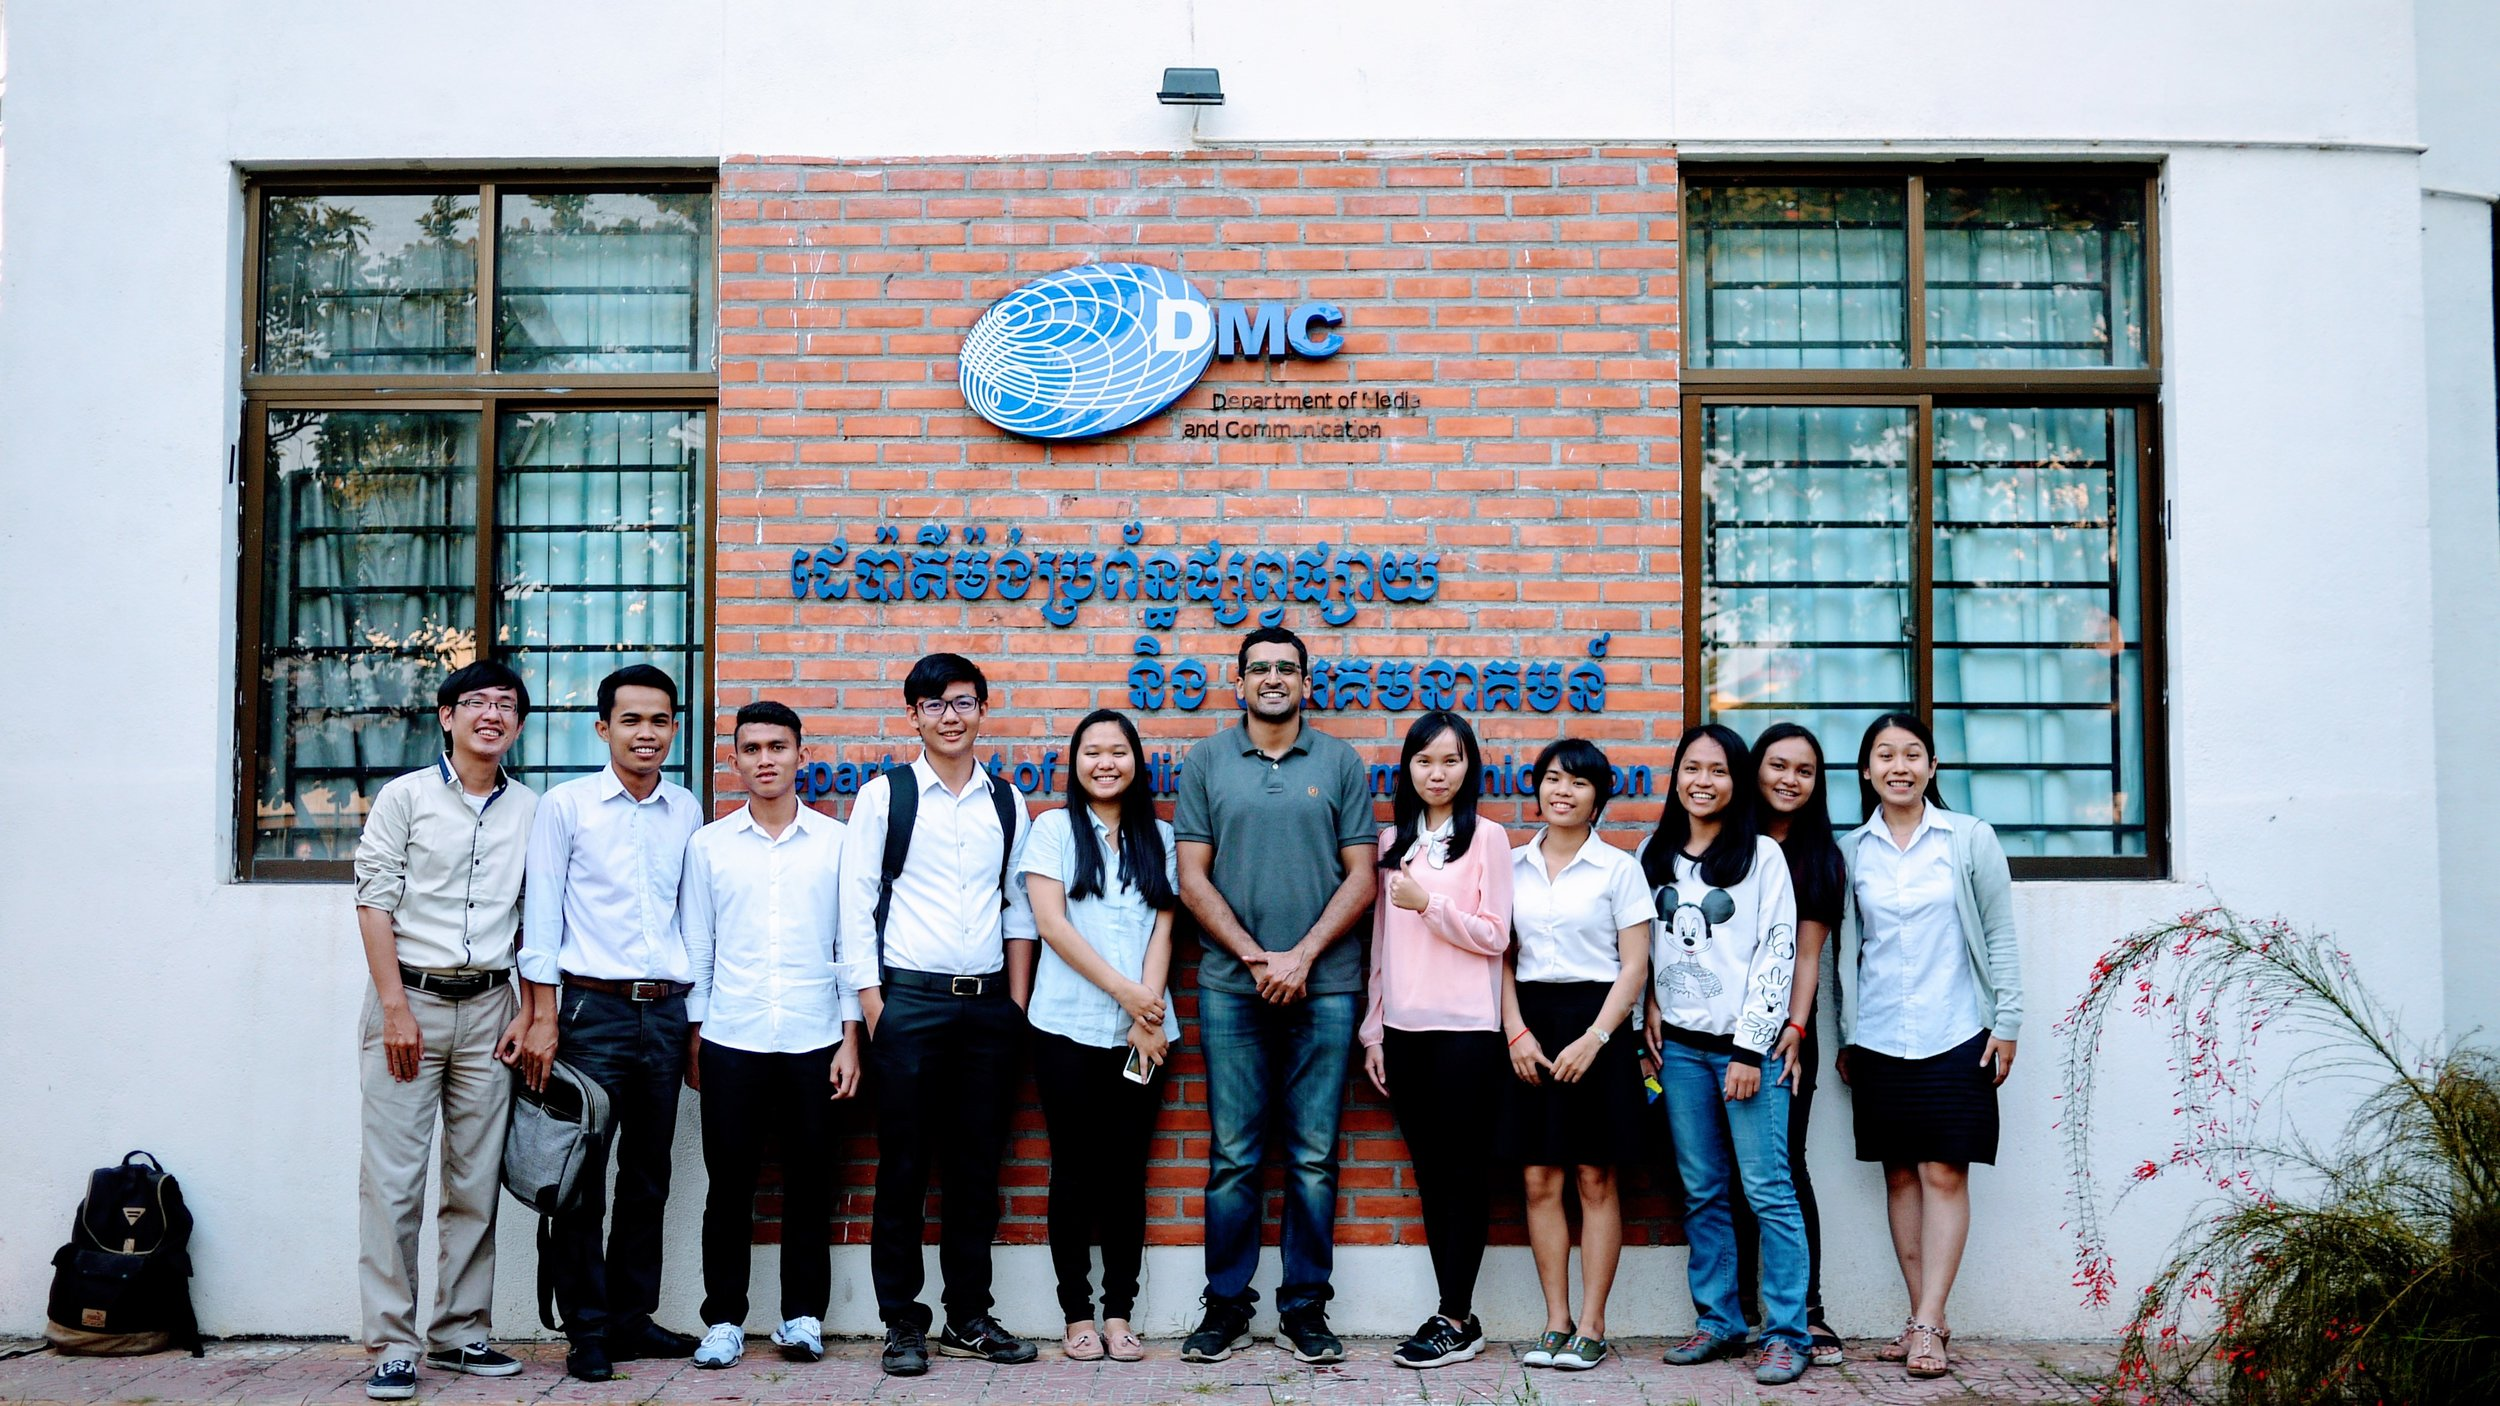 Wikipedia Workshop group picture at Department of Media and Communication, Royal University of Phnom Penh on Thursday, 11 January 2018.